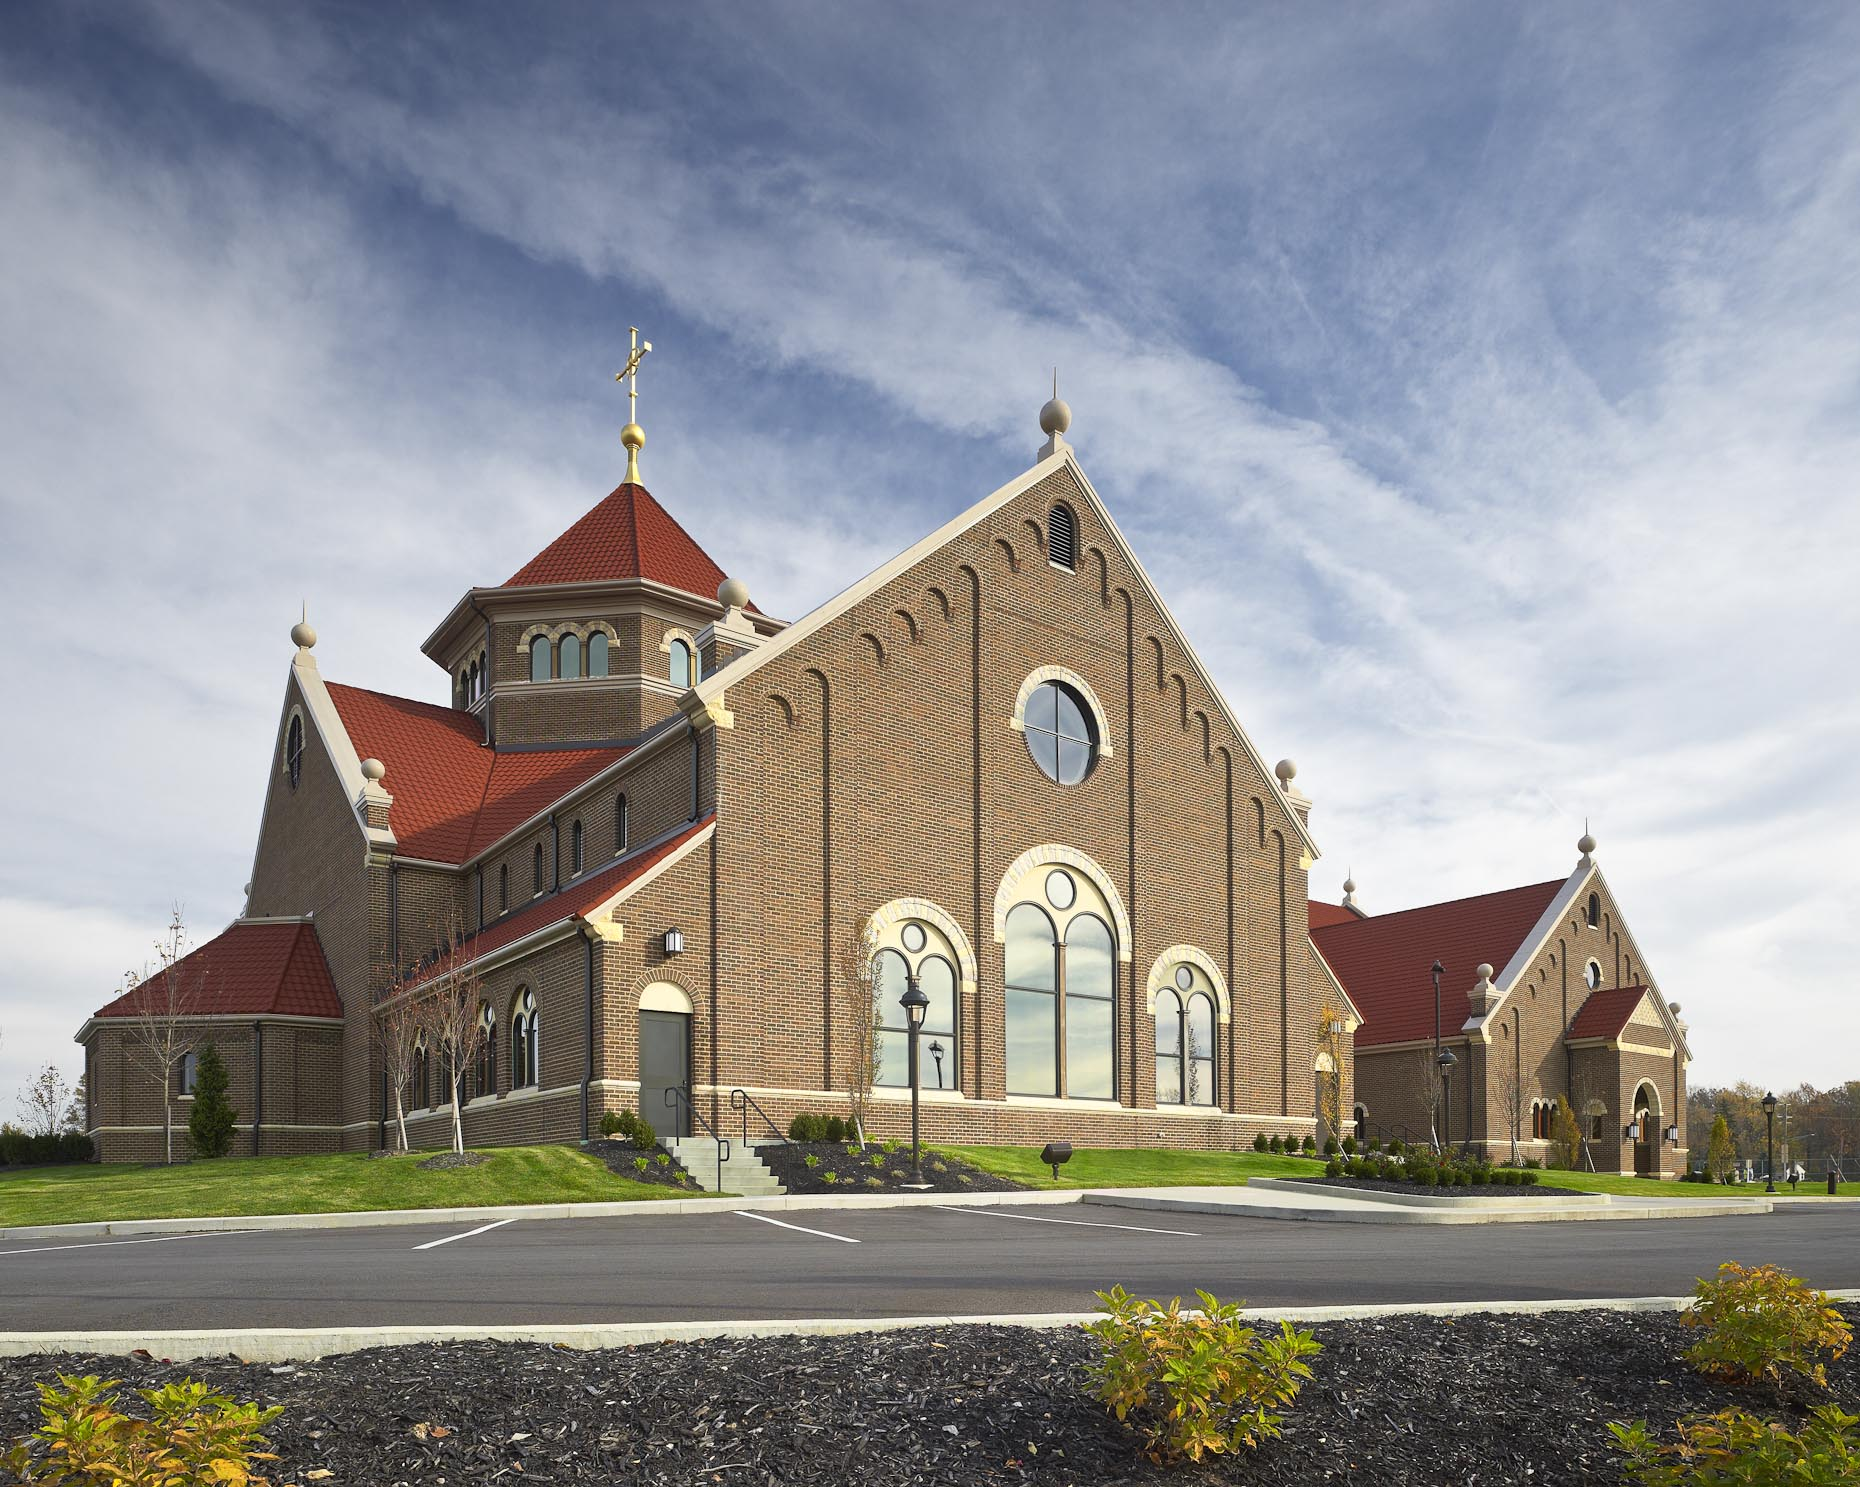 St. Paul the Apostle Parish Catholic Church by Meleca & Corna-Kokosing Photographed by Brad Feinknopf based in Columbus, Ohio